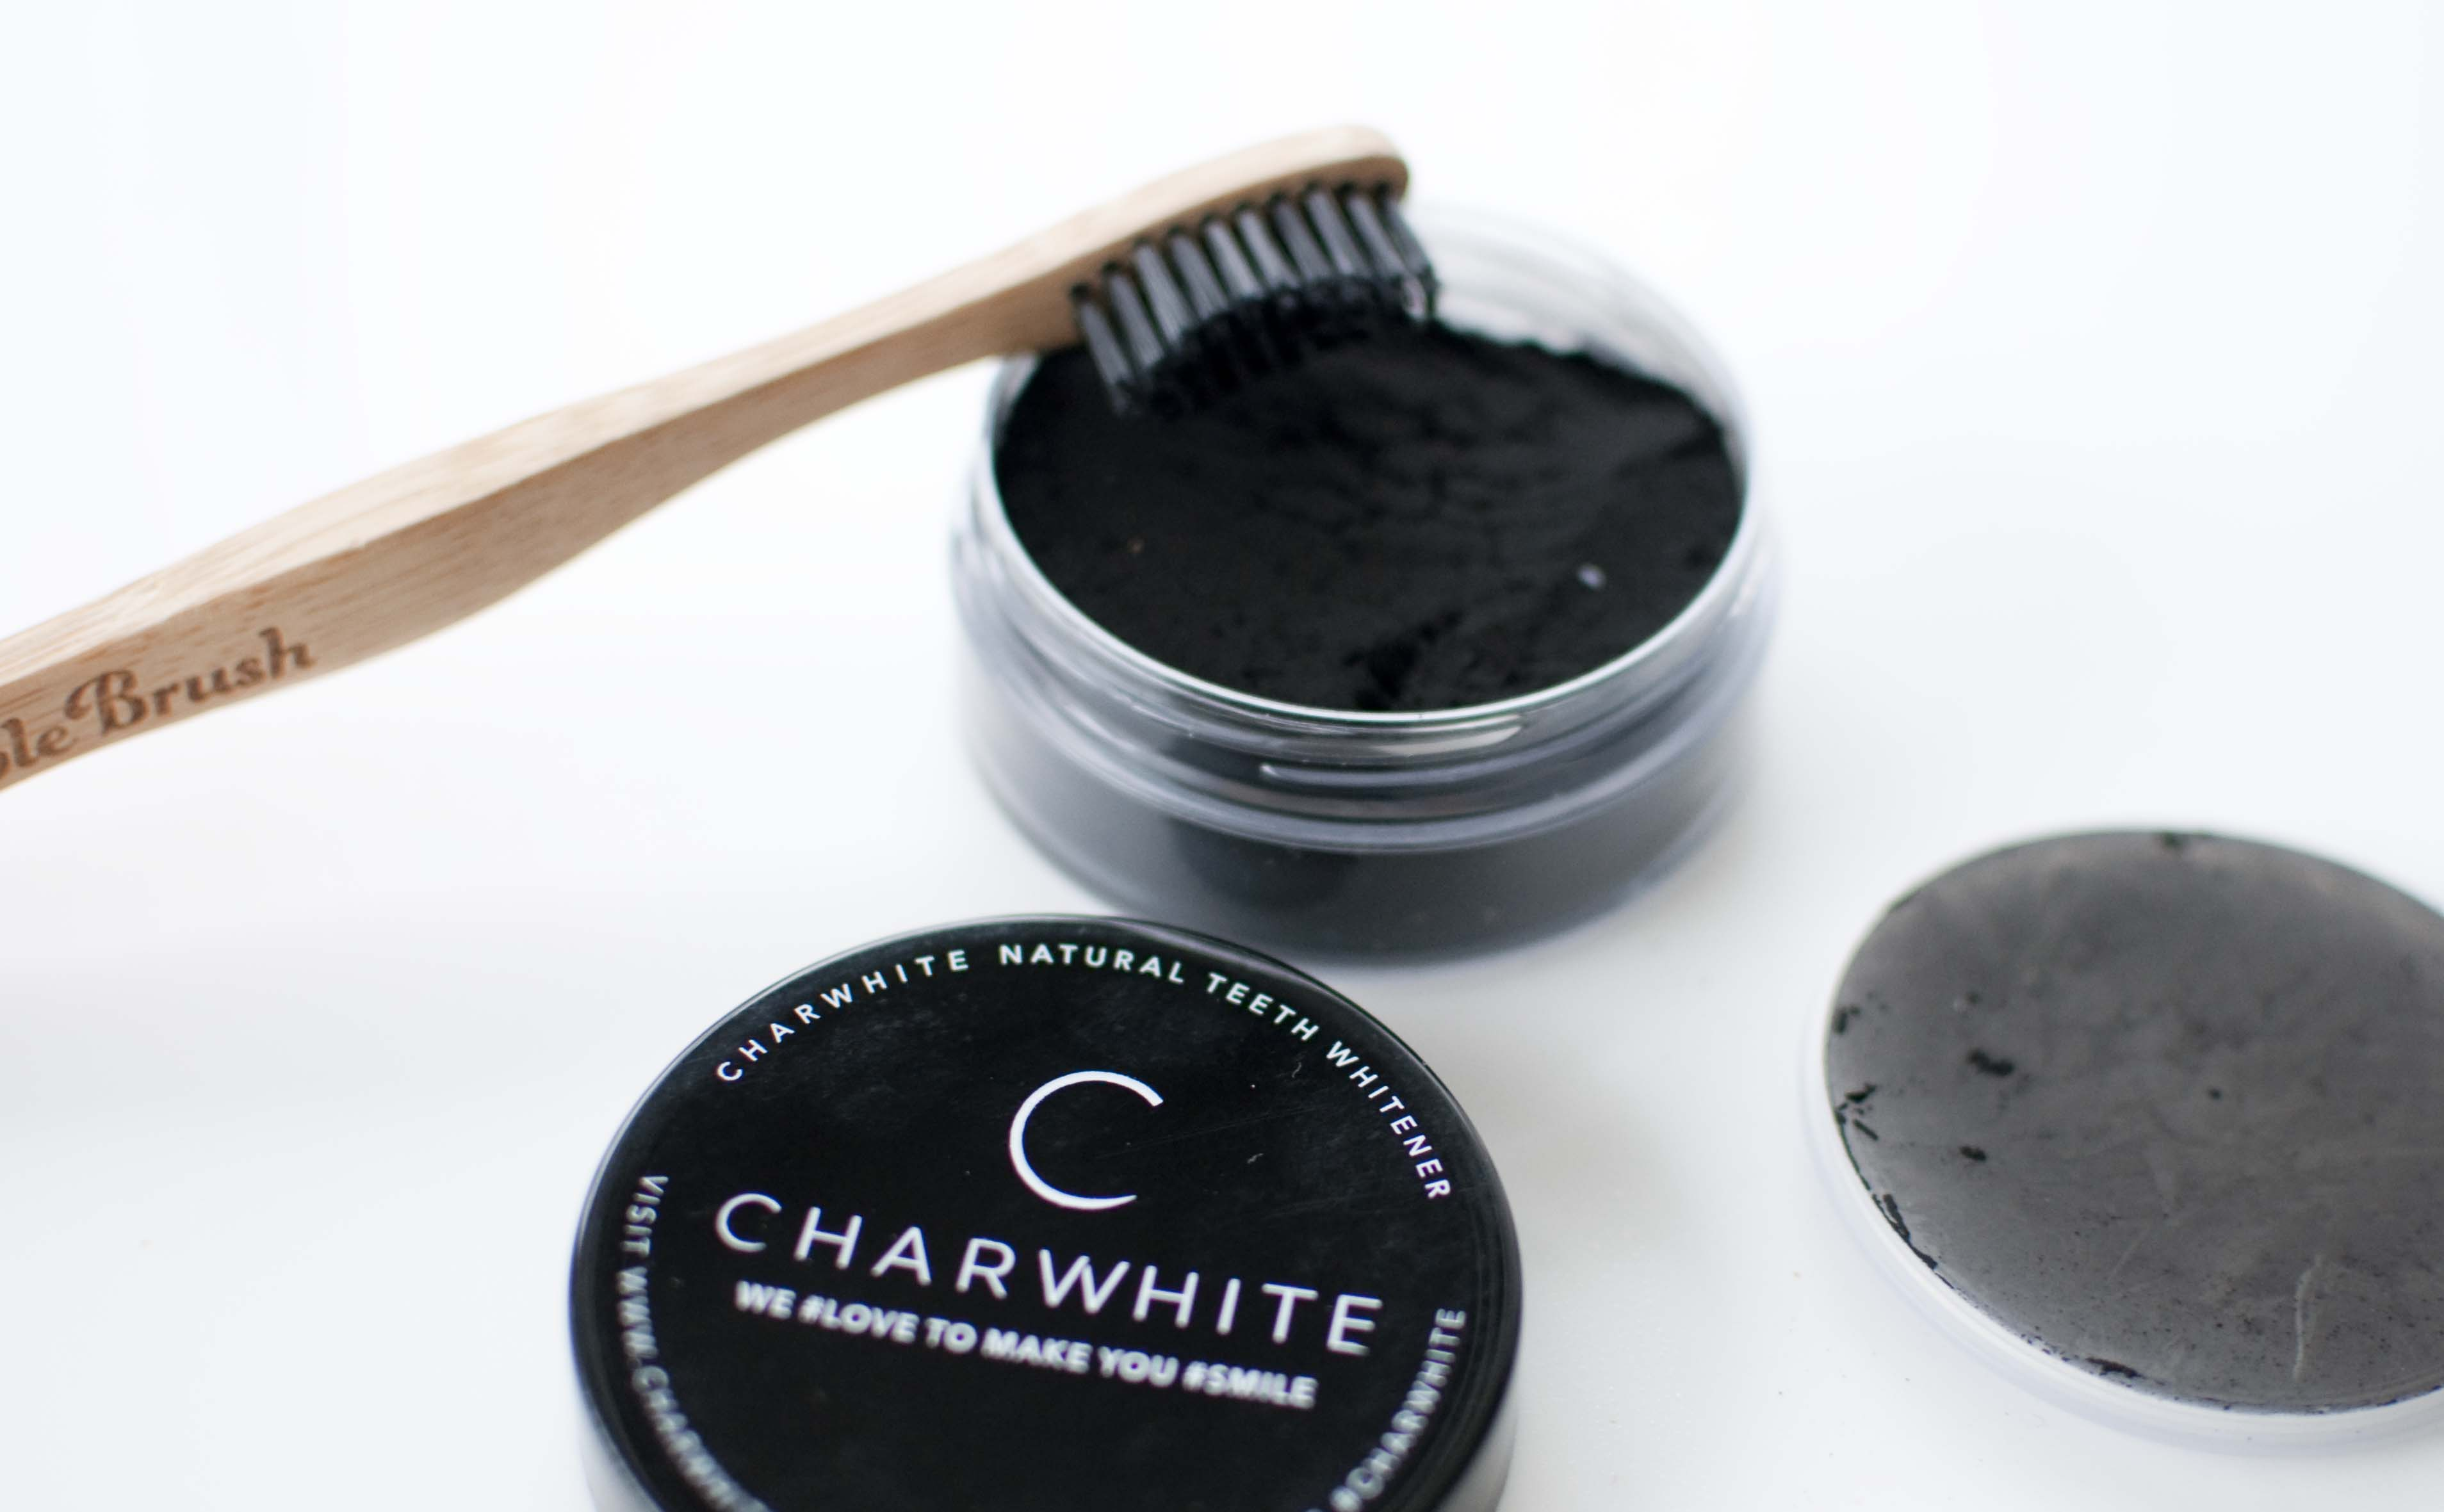 review charwhite natural teeth whitener